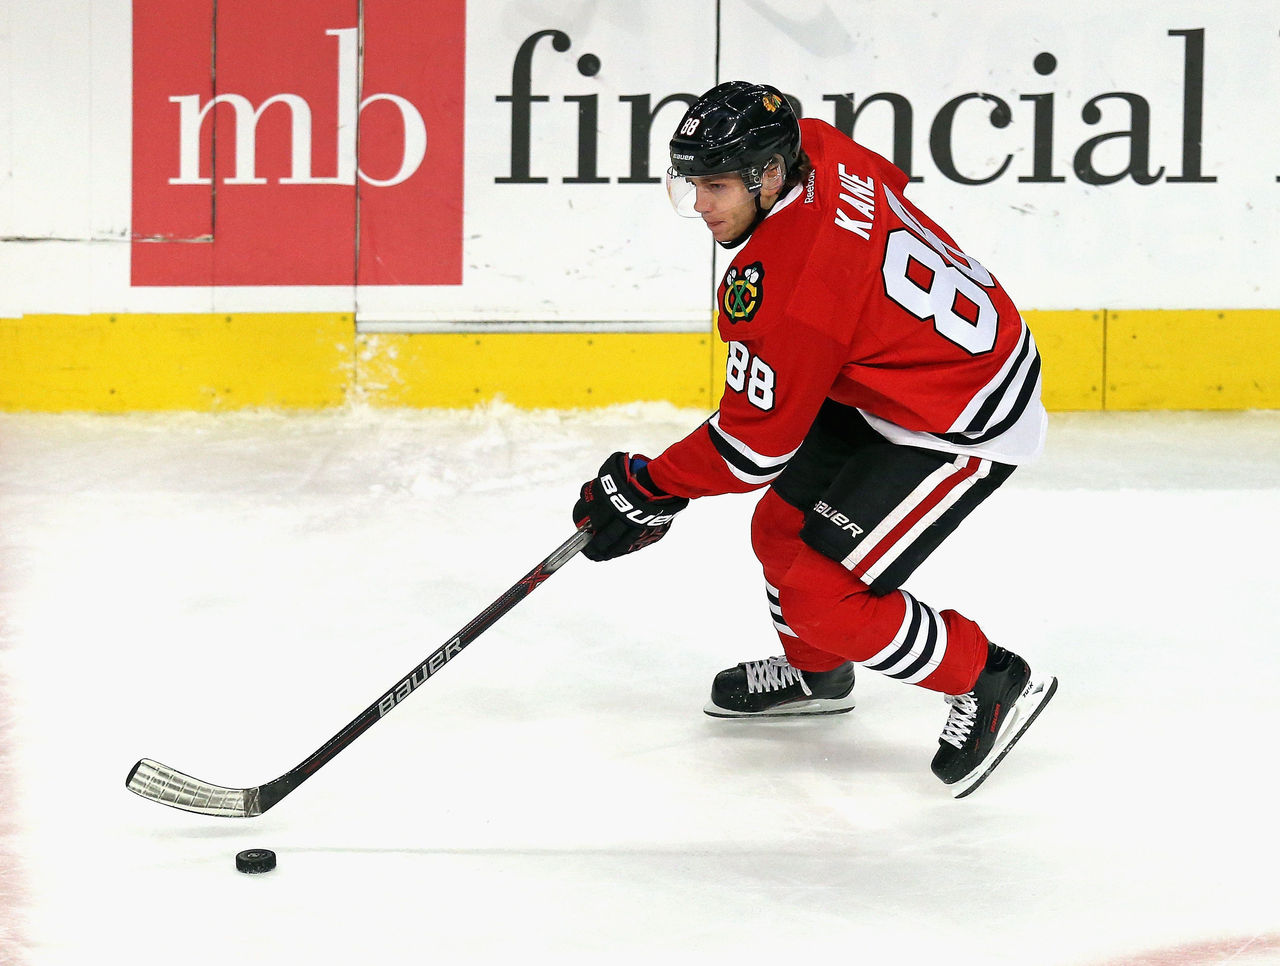 Patrick Kane showing skills he developed with the help of hockey stickhandling training tools